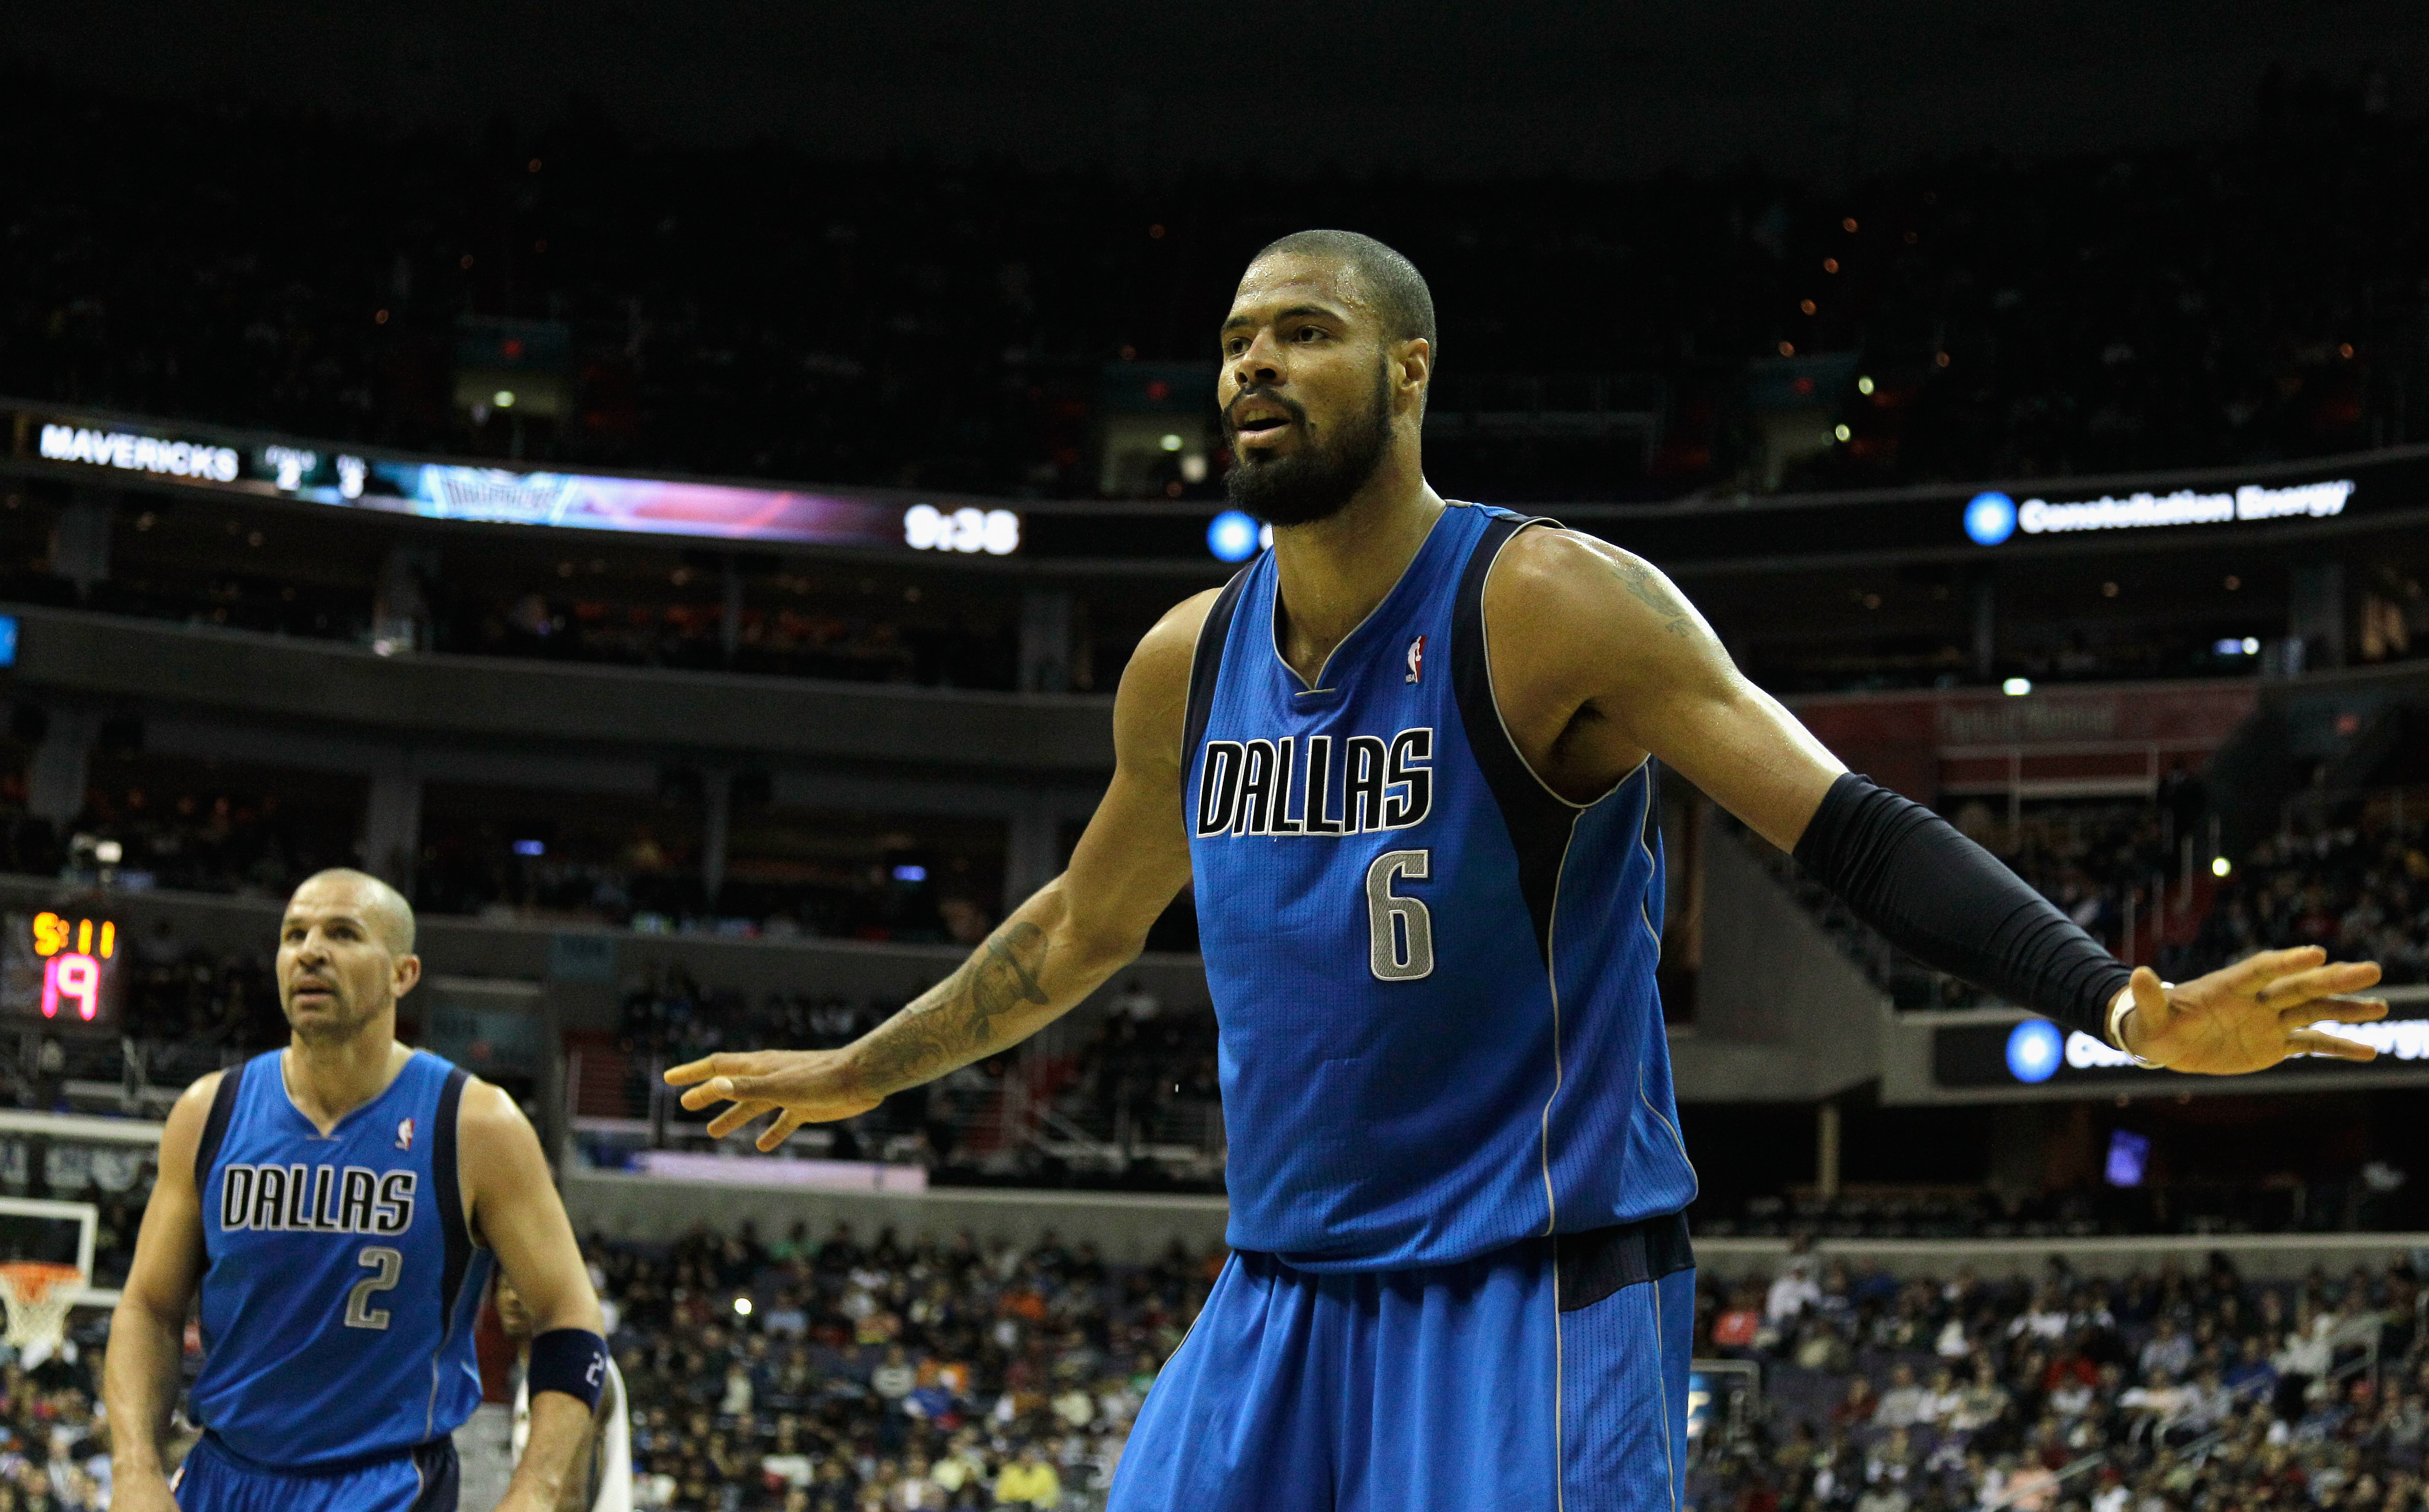 WASHINGTON, DC - FEBRUARY 26: Tyson Chandler #6 and Jason Kidd #2 of the Dallas Mavericks against the Washington Wizards at the Verizon Center on February 26, 2011 in Washington, DC. NOTE TO USER: User expressly acknowledges and agrees that, by downloadin